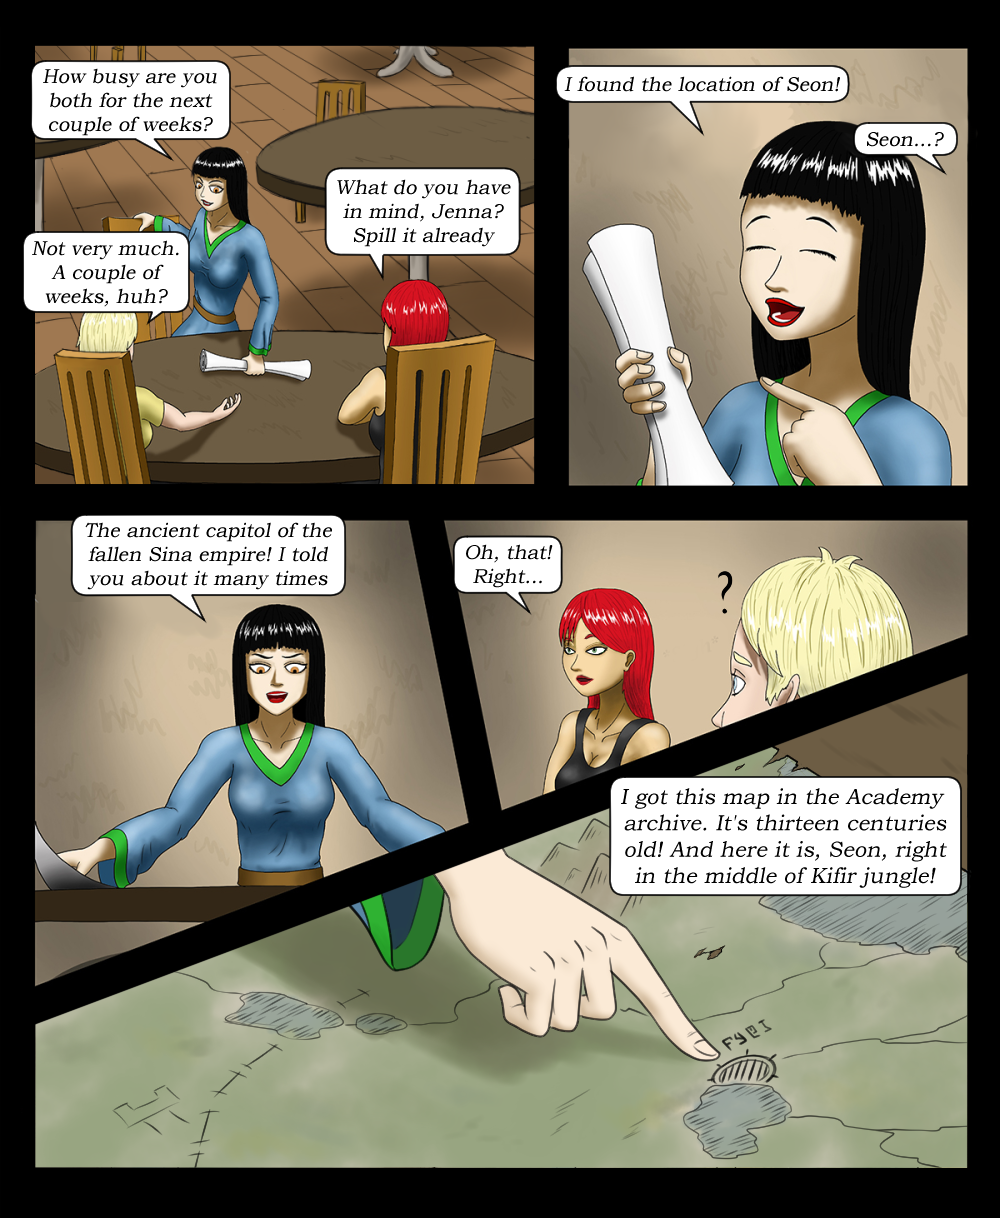 Page 6 - Sharing the success